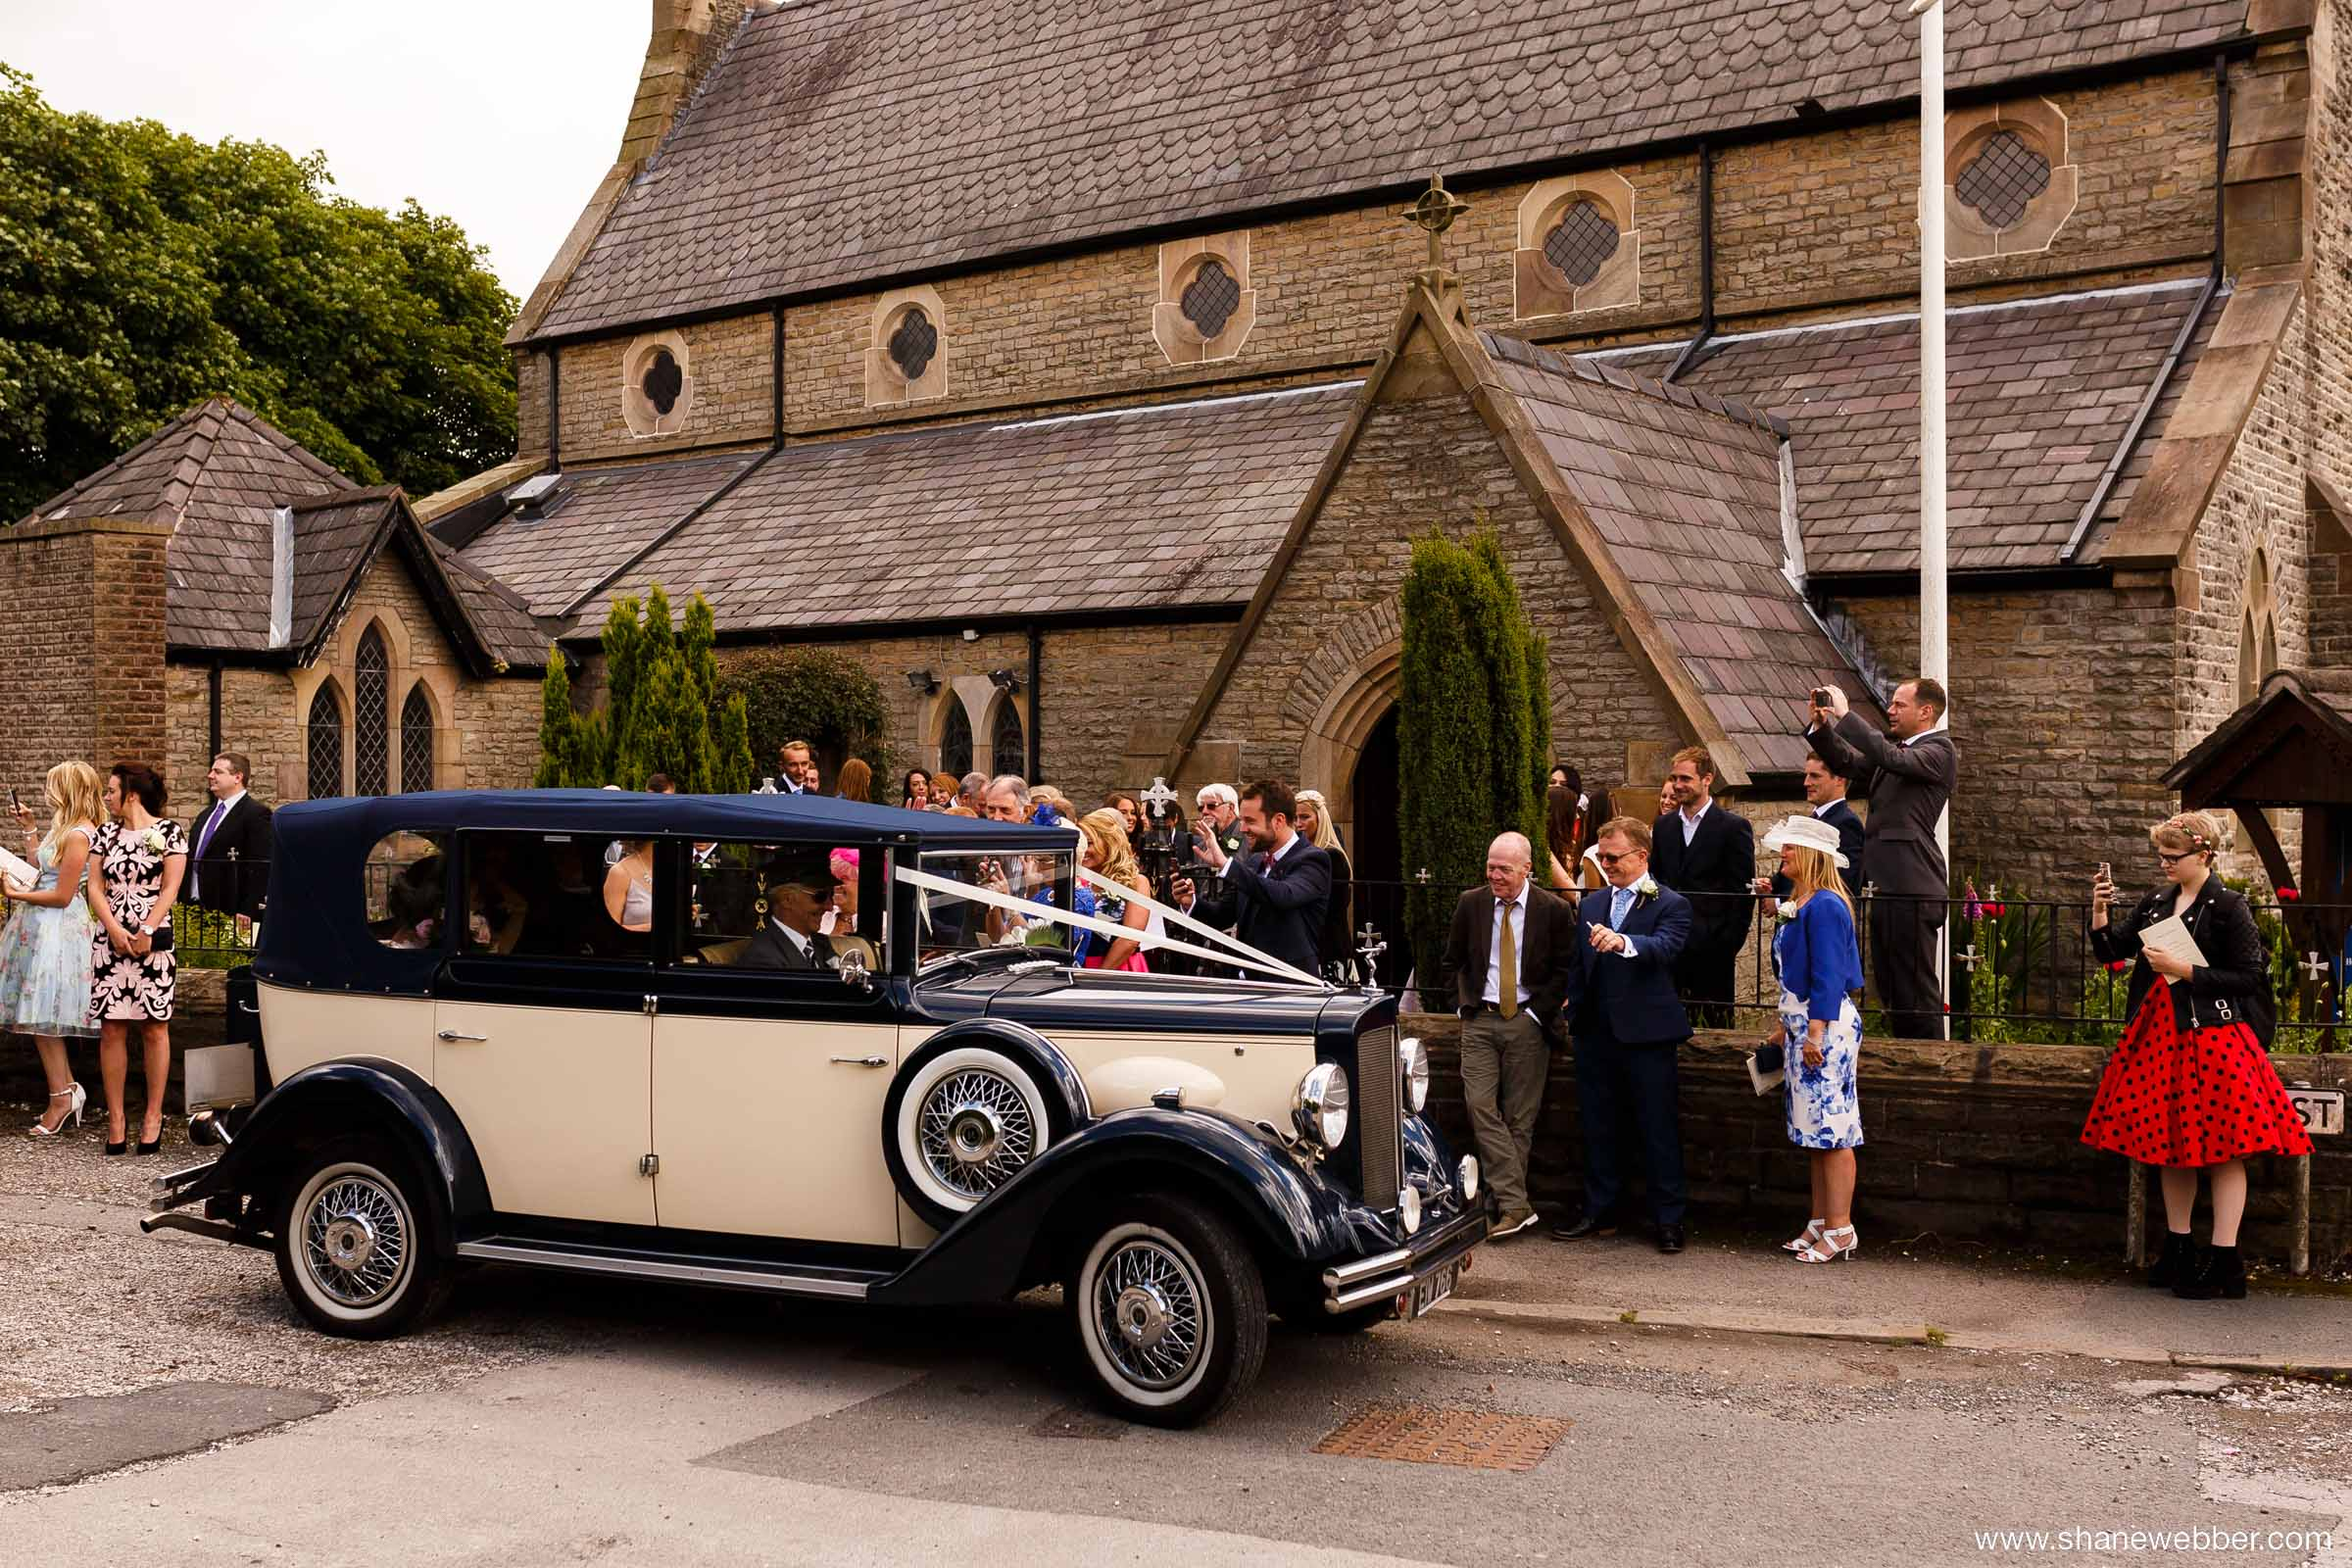 Wedding ceremony at a local church in Wigan